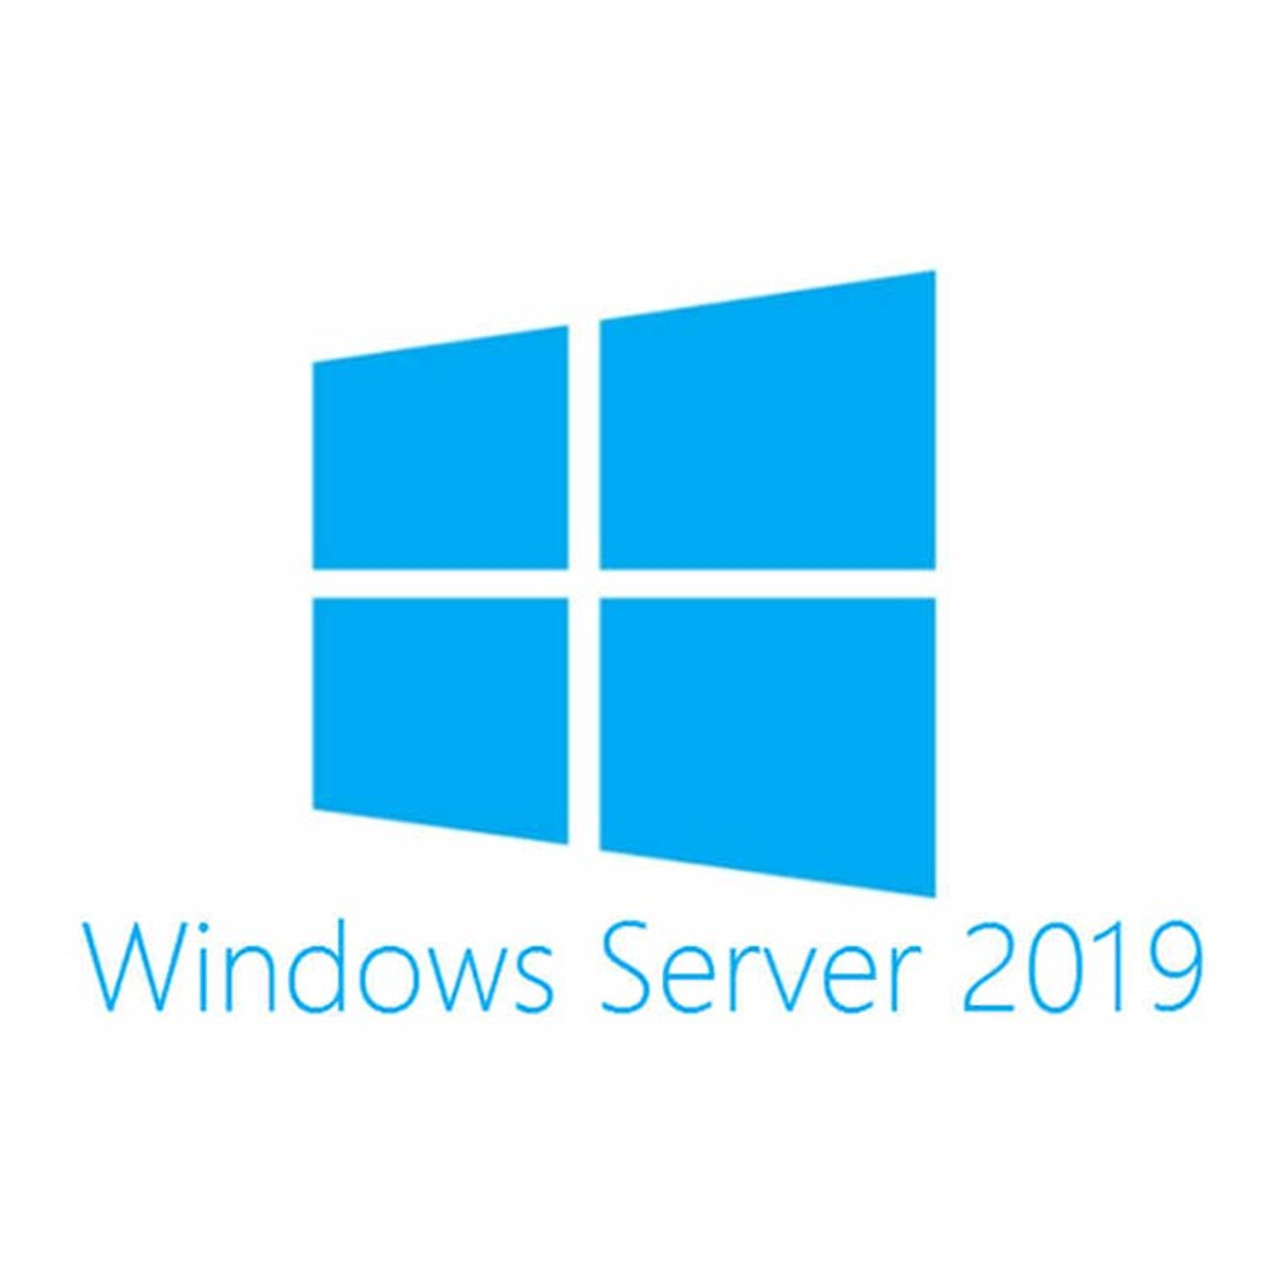 Image for Microsoft Windows Server 2019 Standard POS 2-Core Licence - OEM CX Computer Superstore